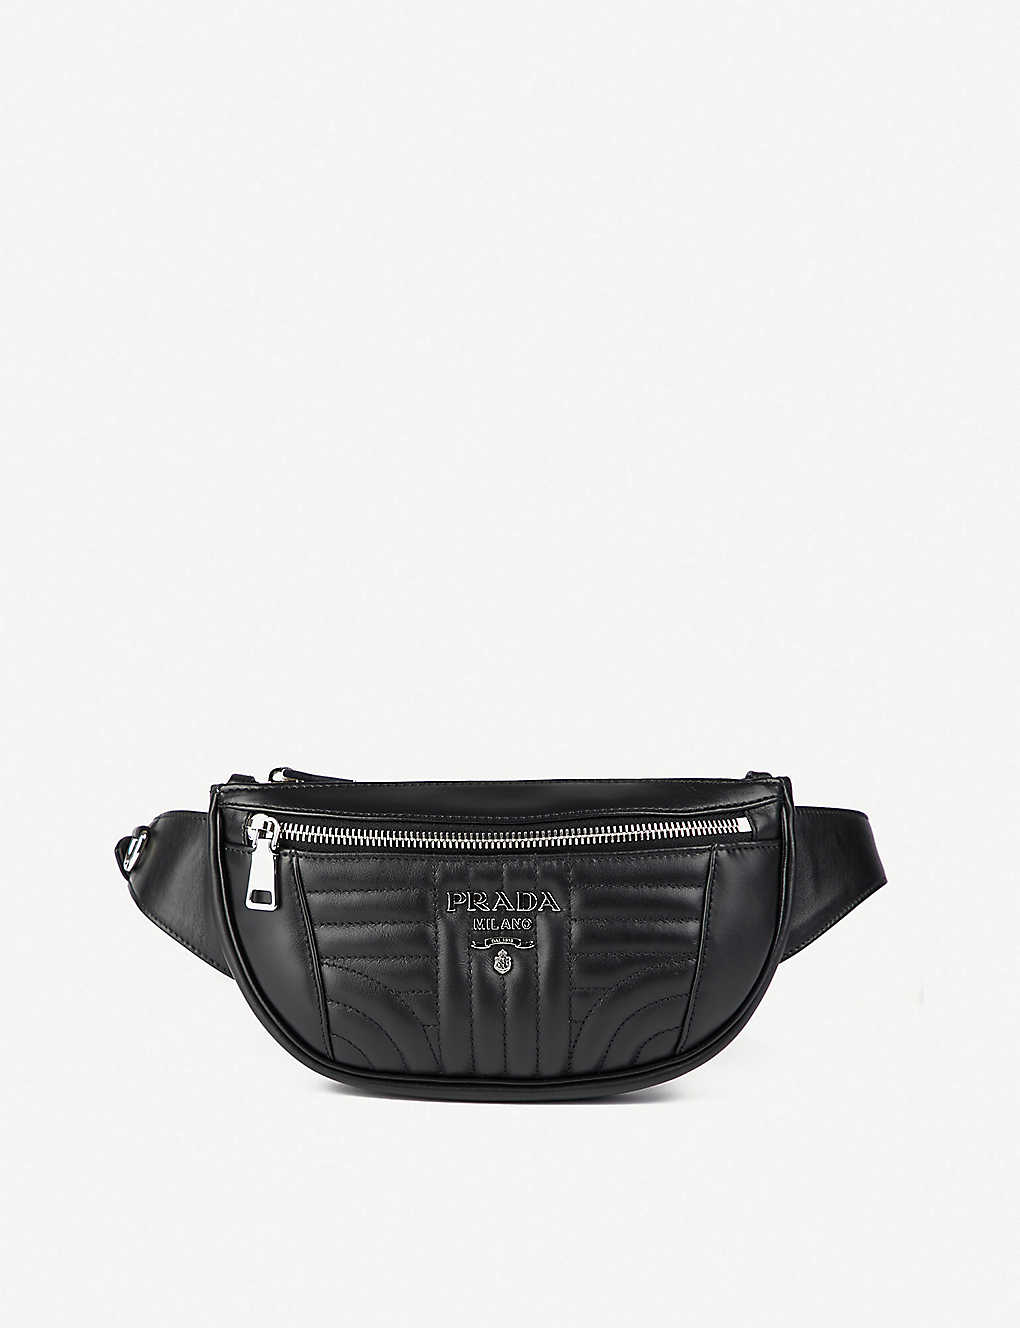 53b02e301429 PRADA - Diagramme quilted leather bum bag | Selfridges.com